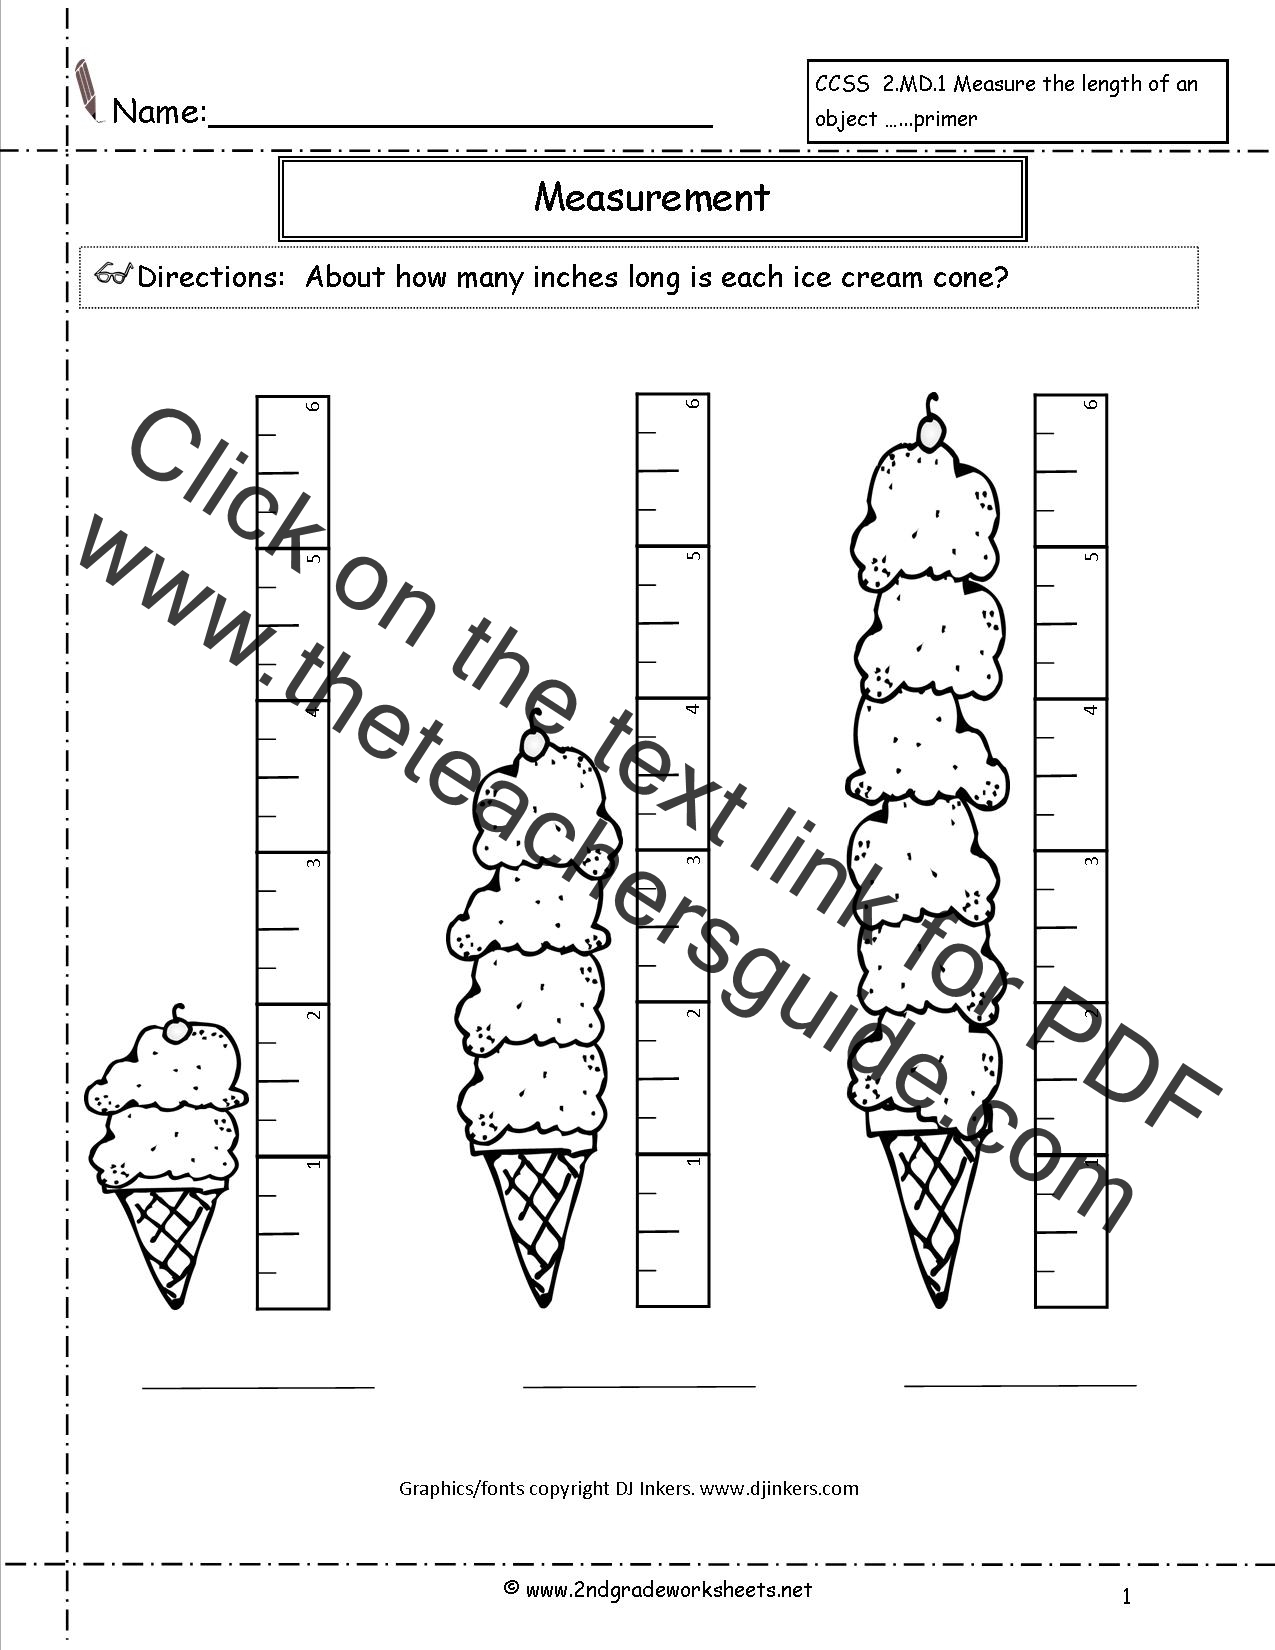 Measurement Worksheets | Dynamically Created Measurement Worksheets